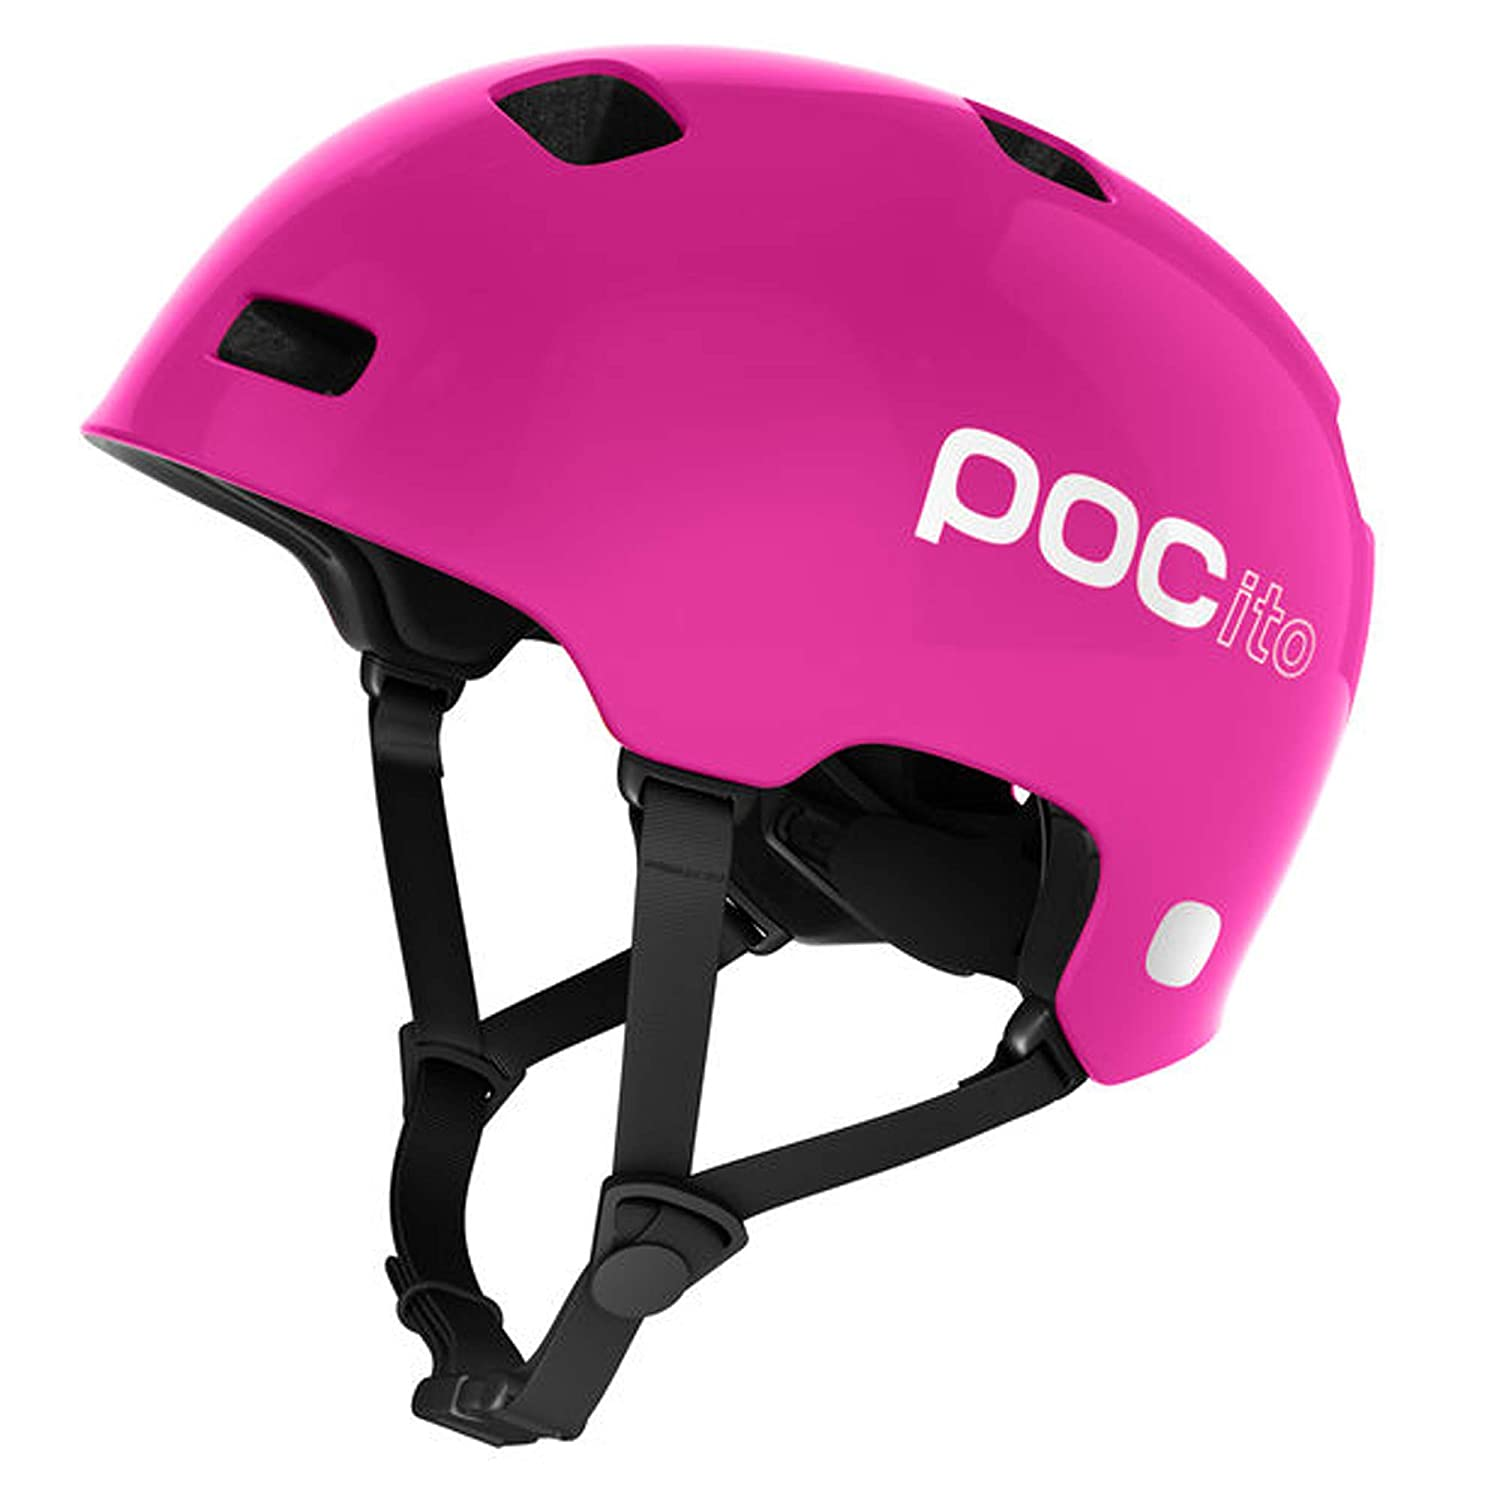 POC POCito Crane, Cycling Helmet for Children